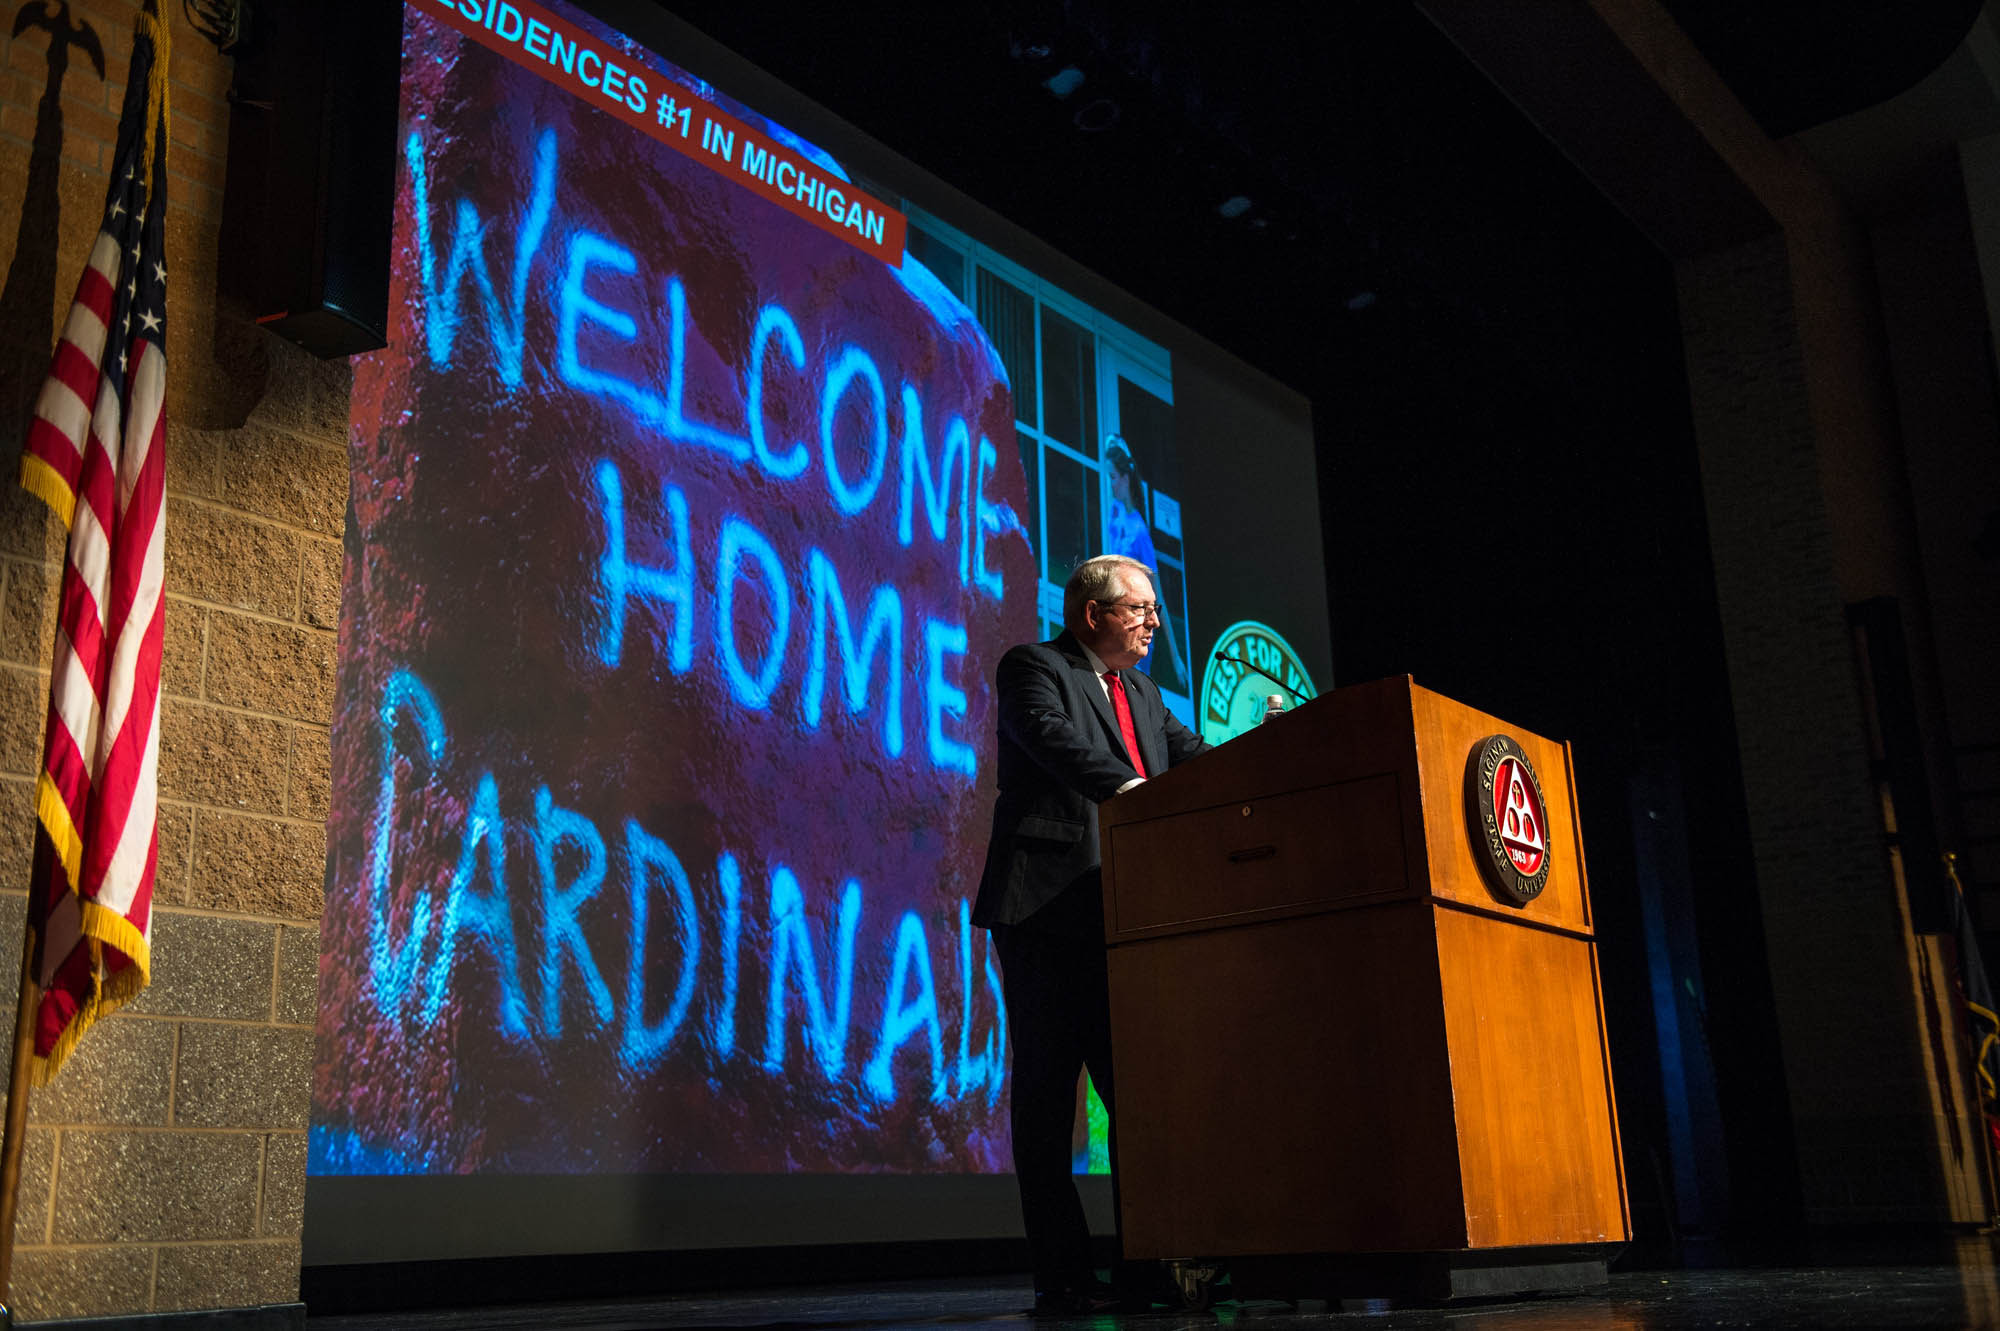 President Bachand at podium with Welcome Home Cardinals message in back